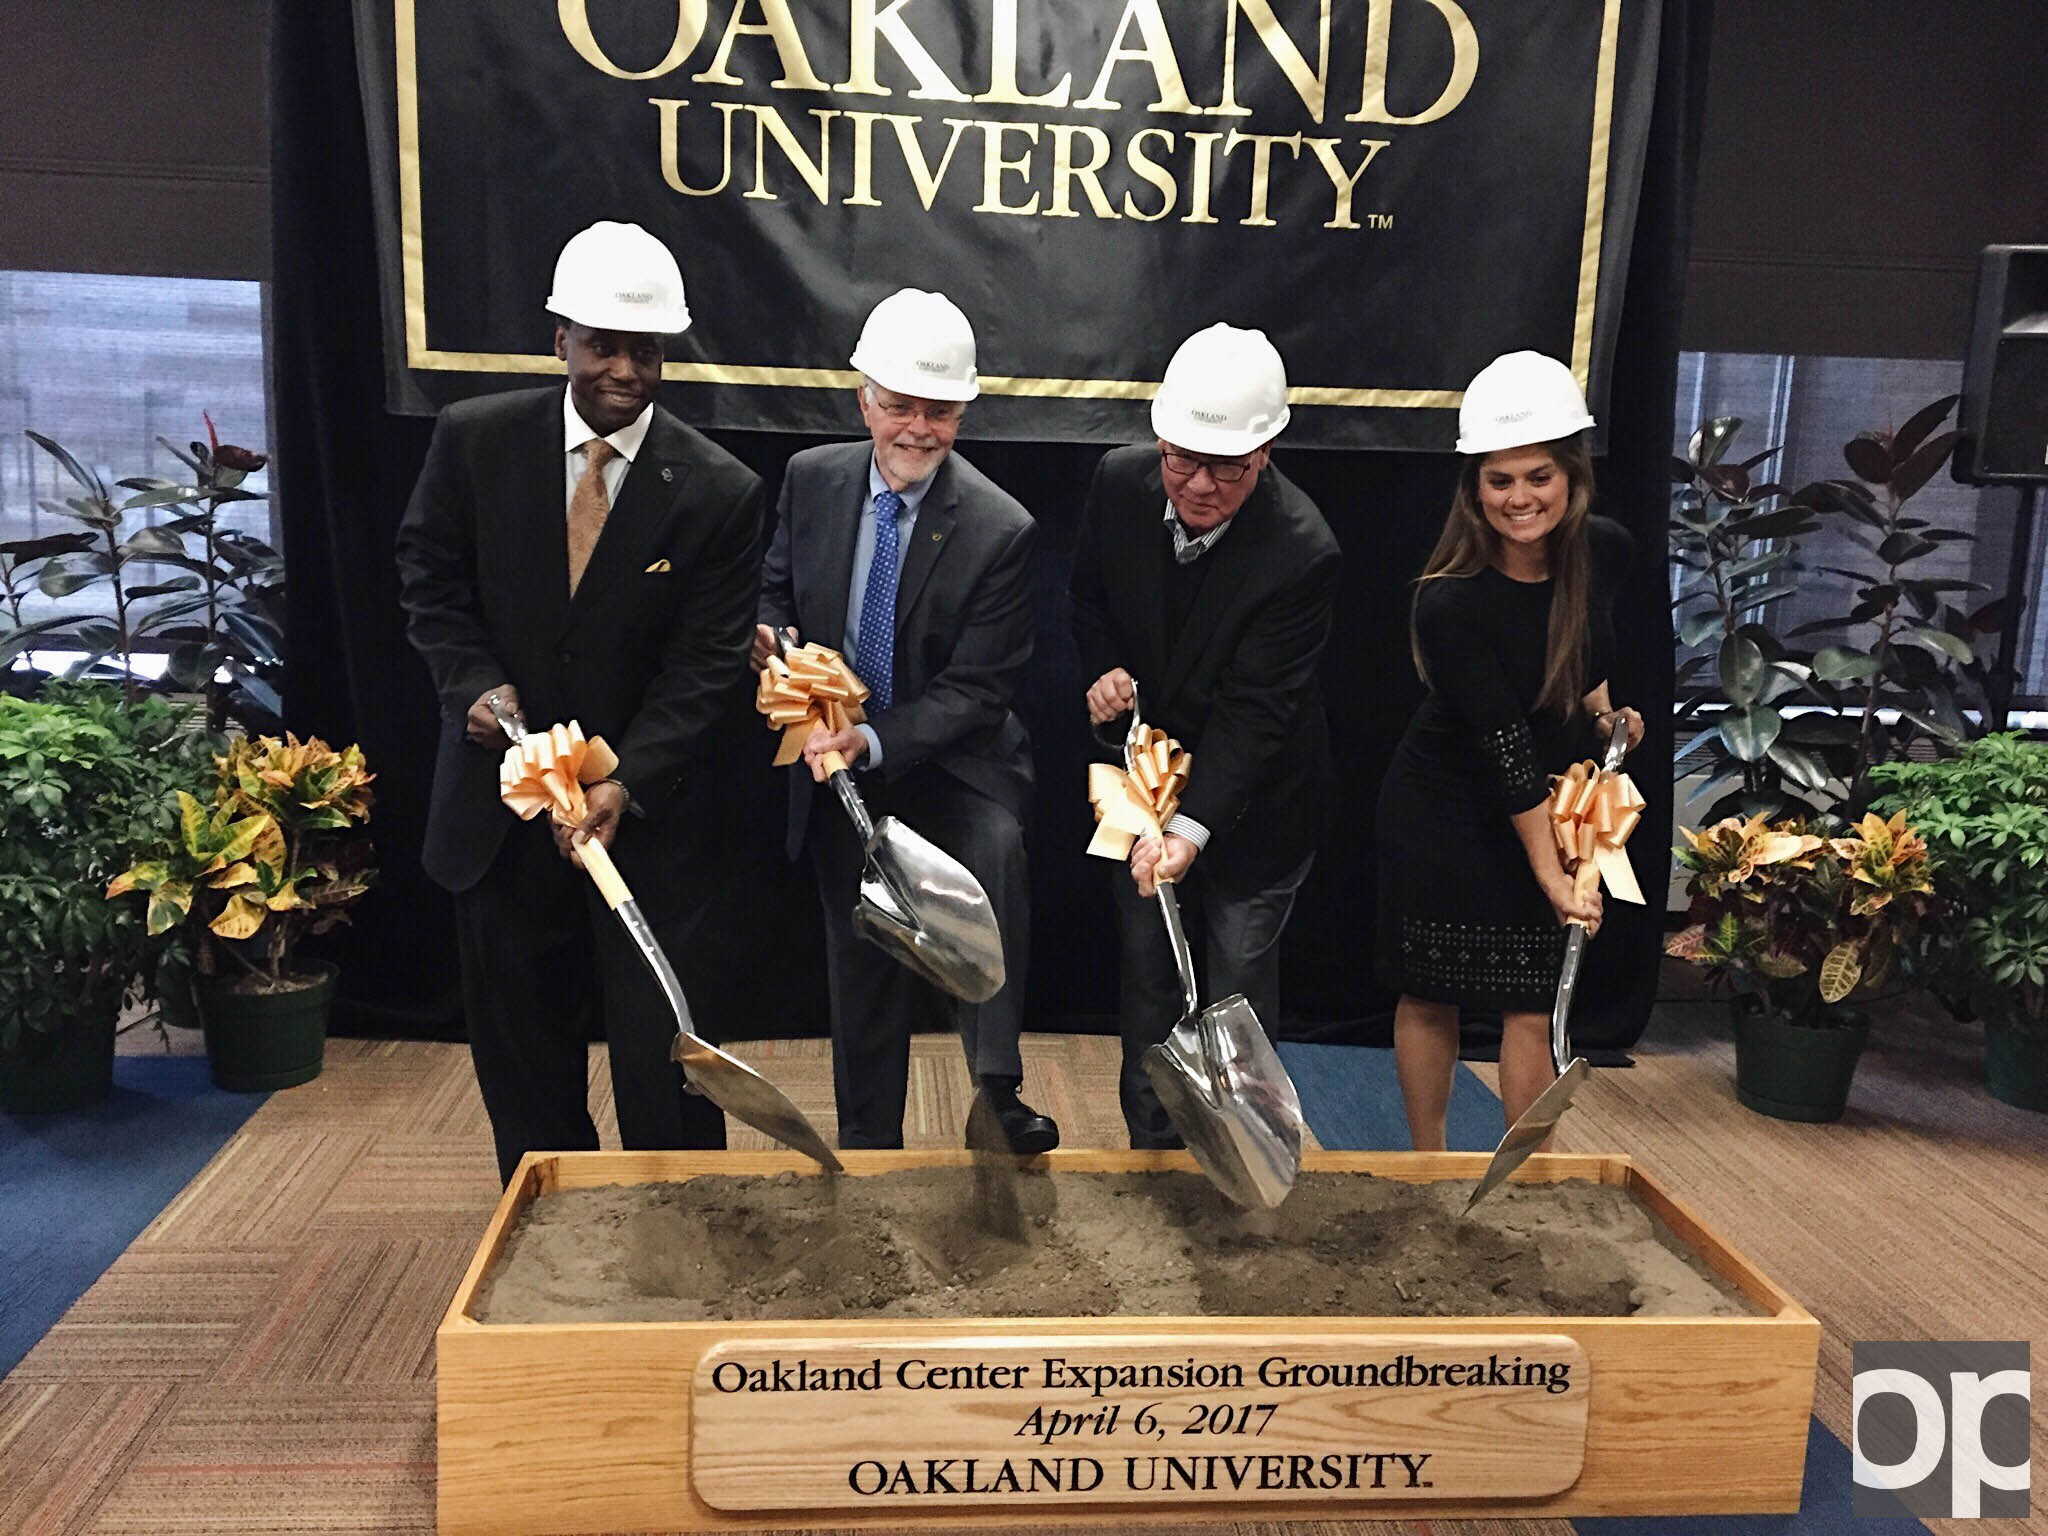 (Left to right): Vice President for Student Affairs Glenn McIntosh, President George Hynd, Vice Chair of the Board of Trustees W. David Tull and former OUSC President and 2014 Graduate Samantha Wolf